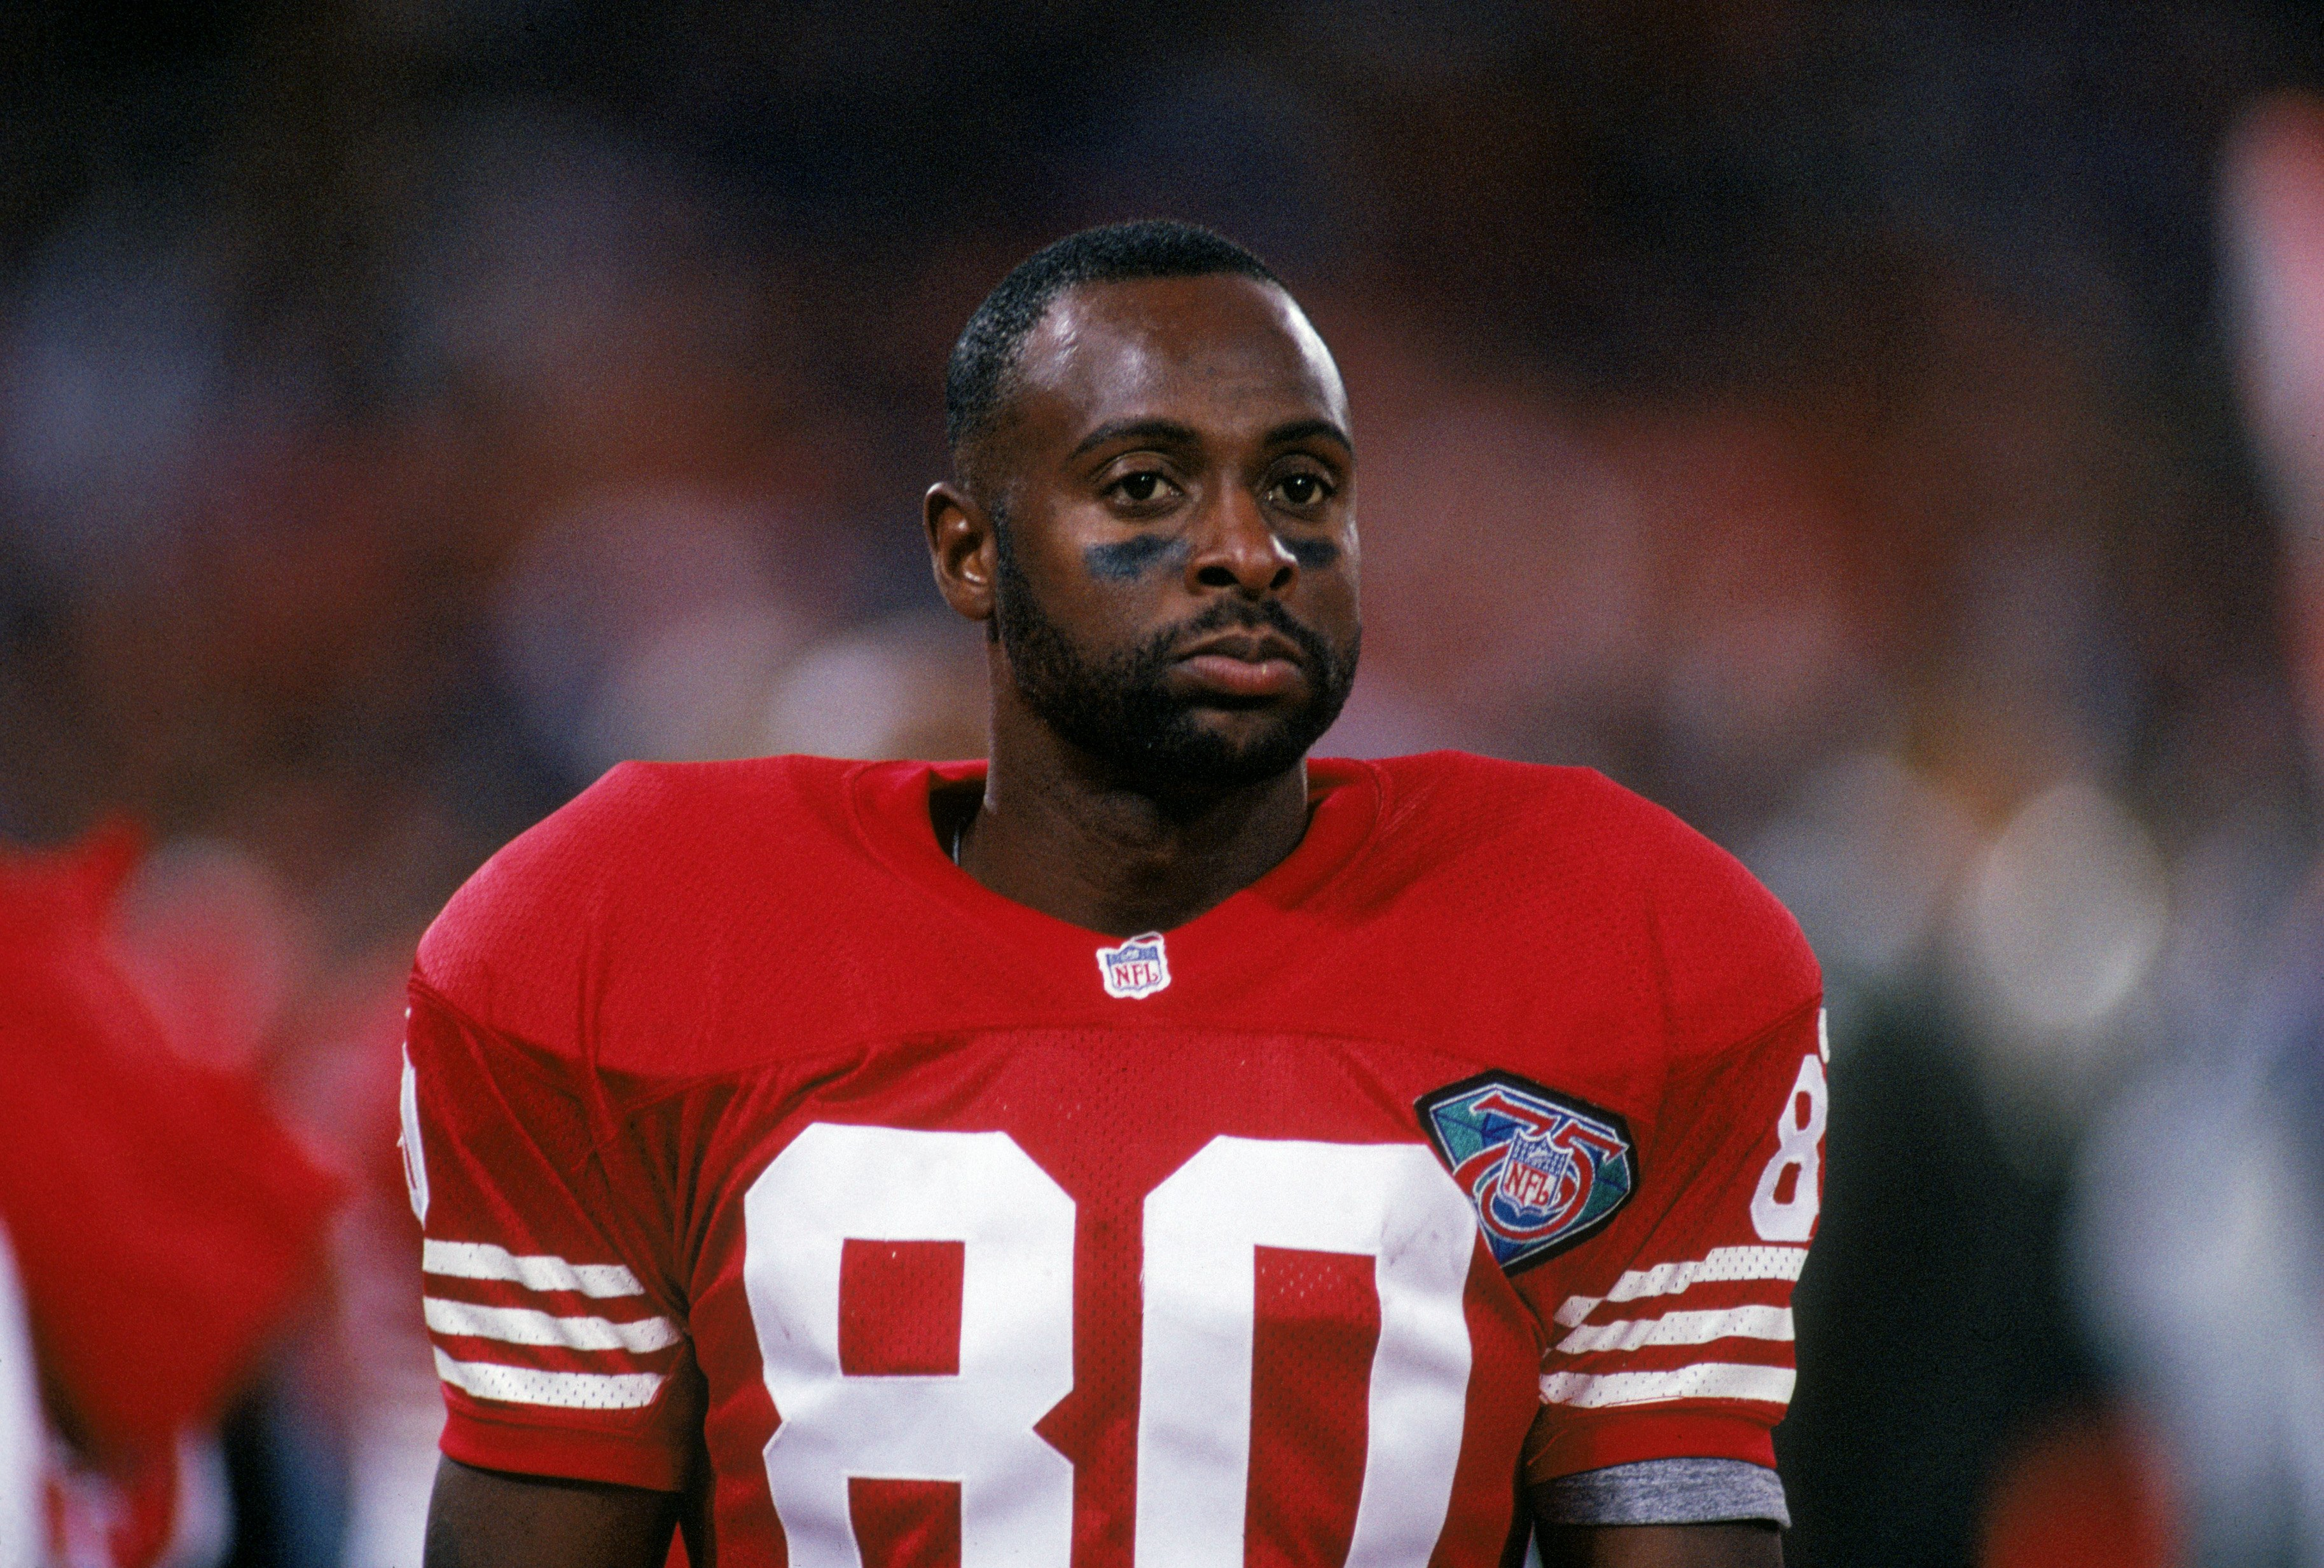 Jerry Rice admits to cheating, says everyone did it